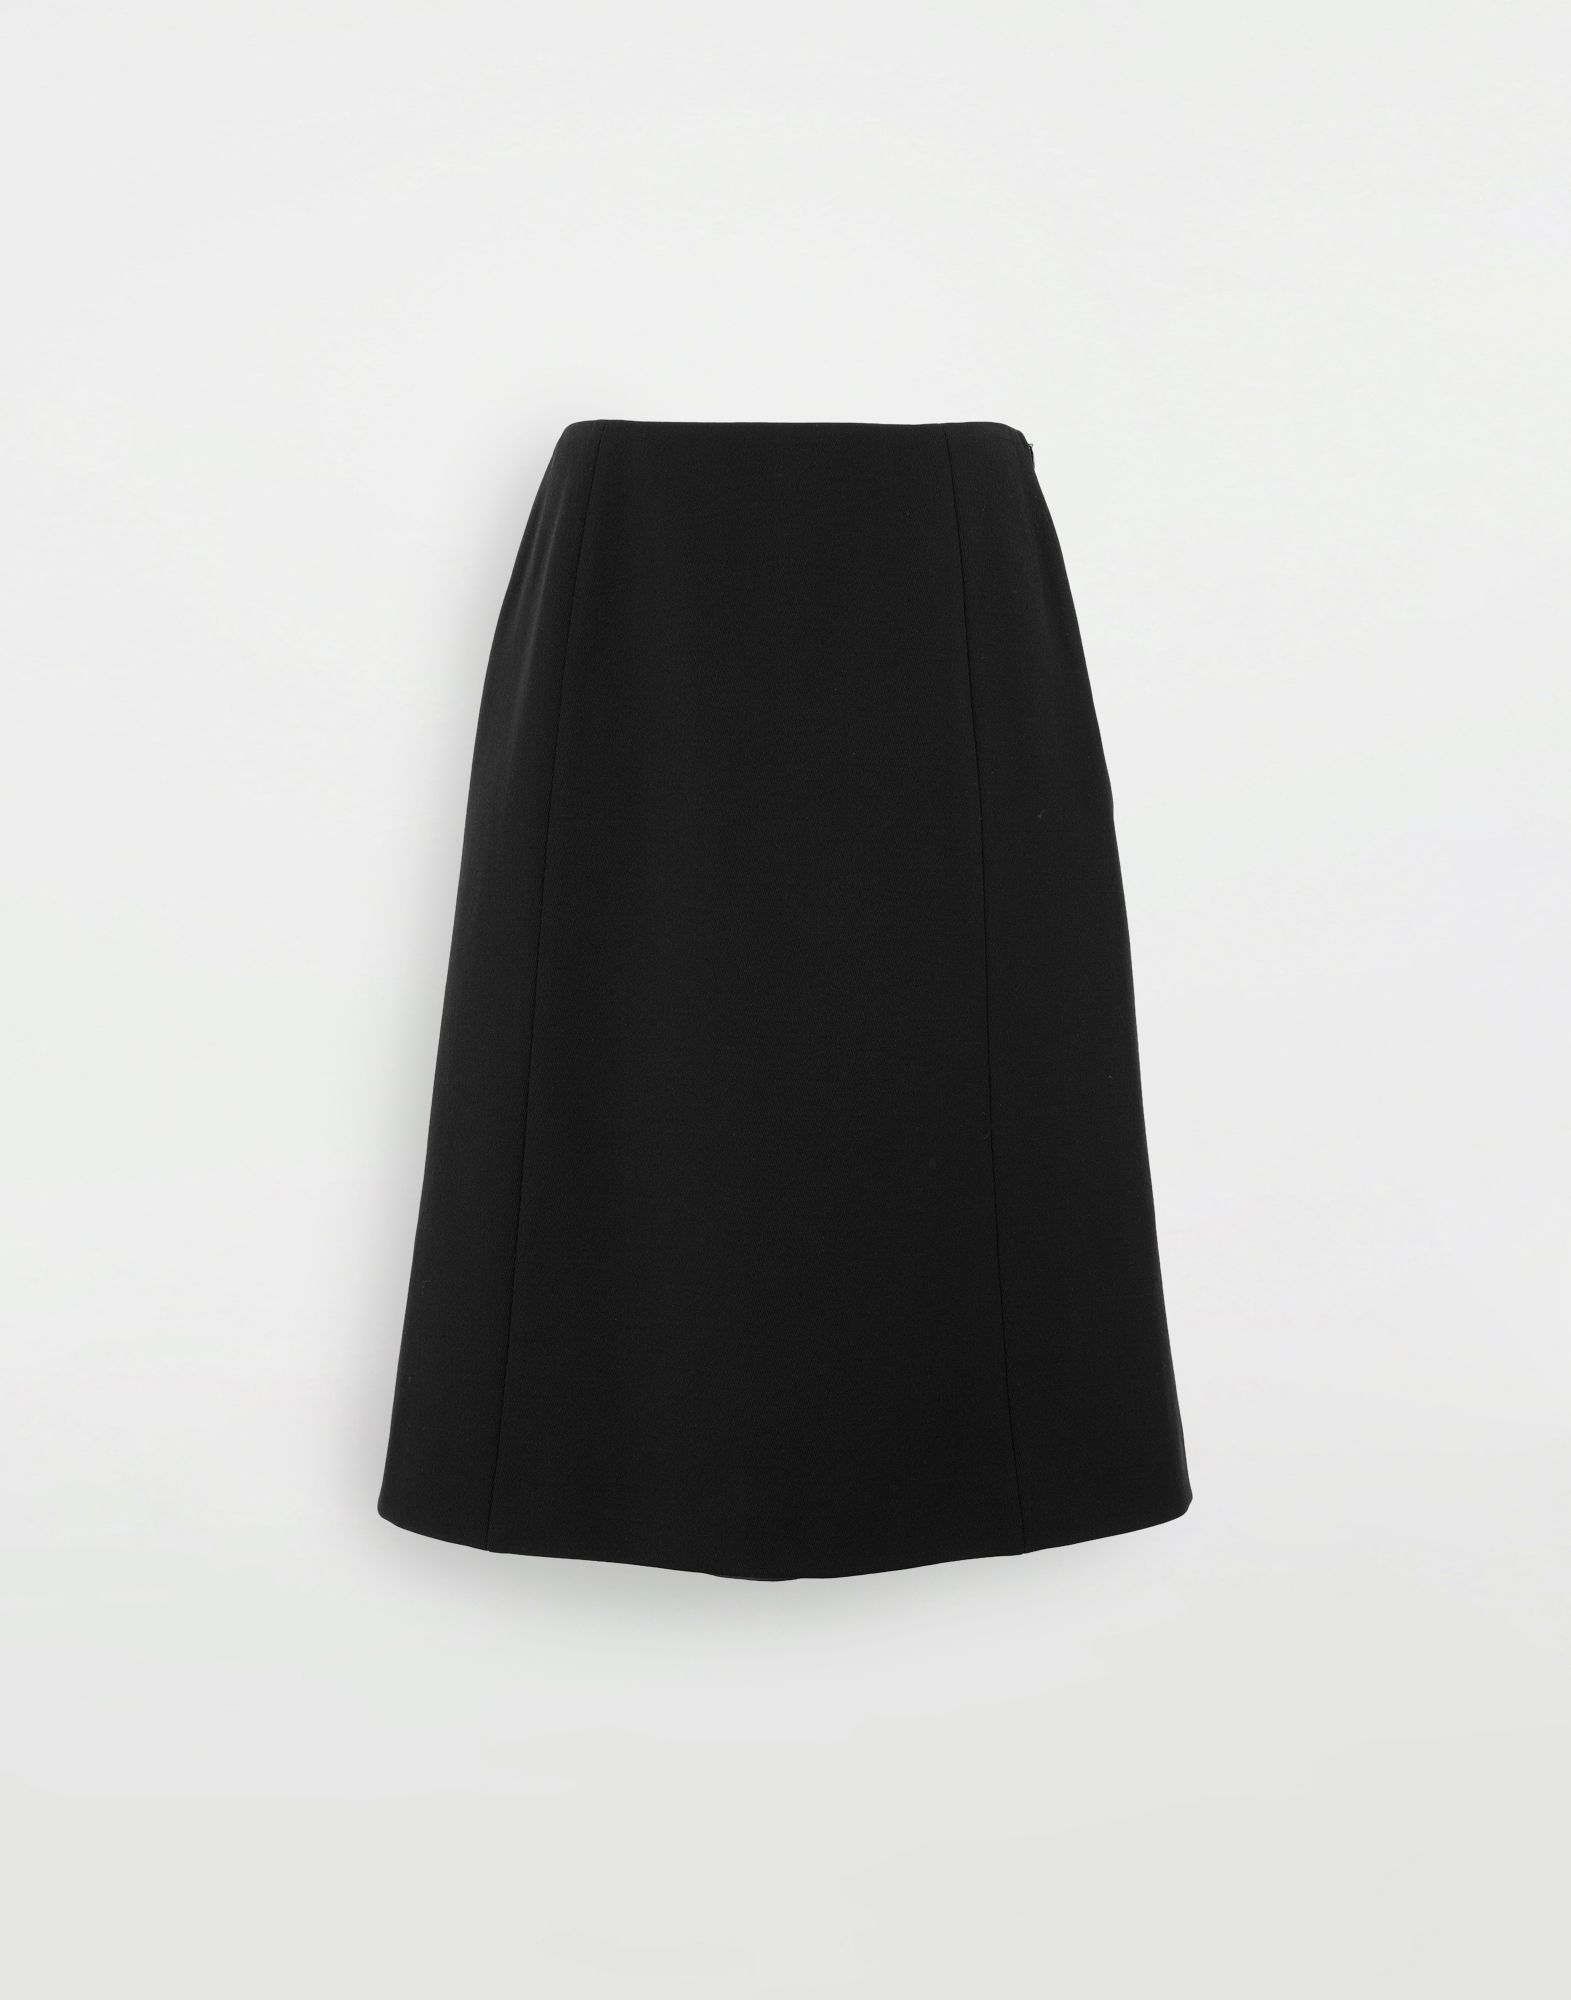 MAISON MARGIELA A-line skirt 3/4 length skirt Woman f